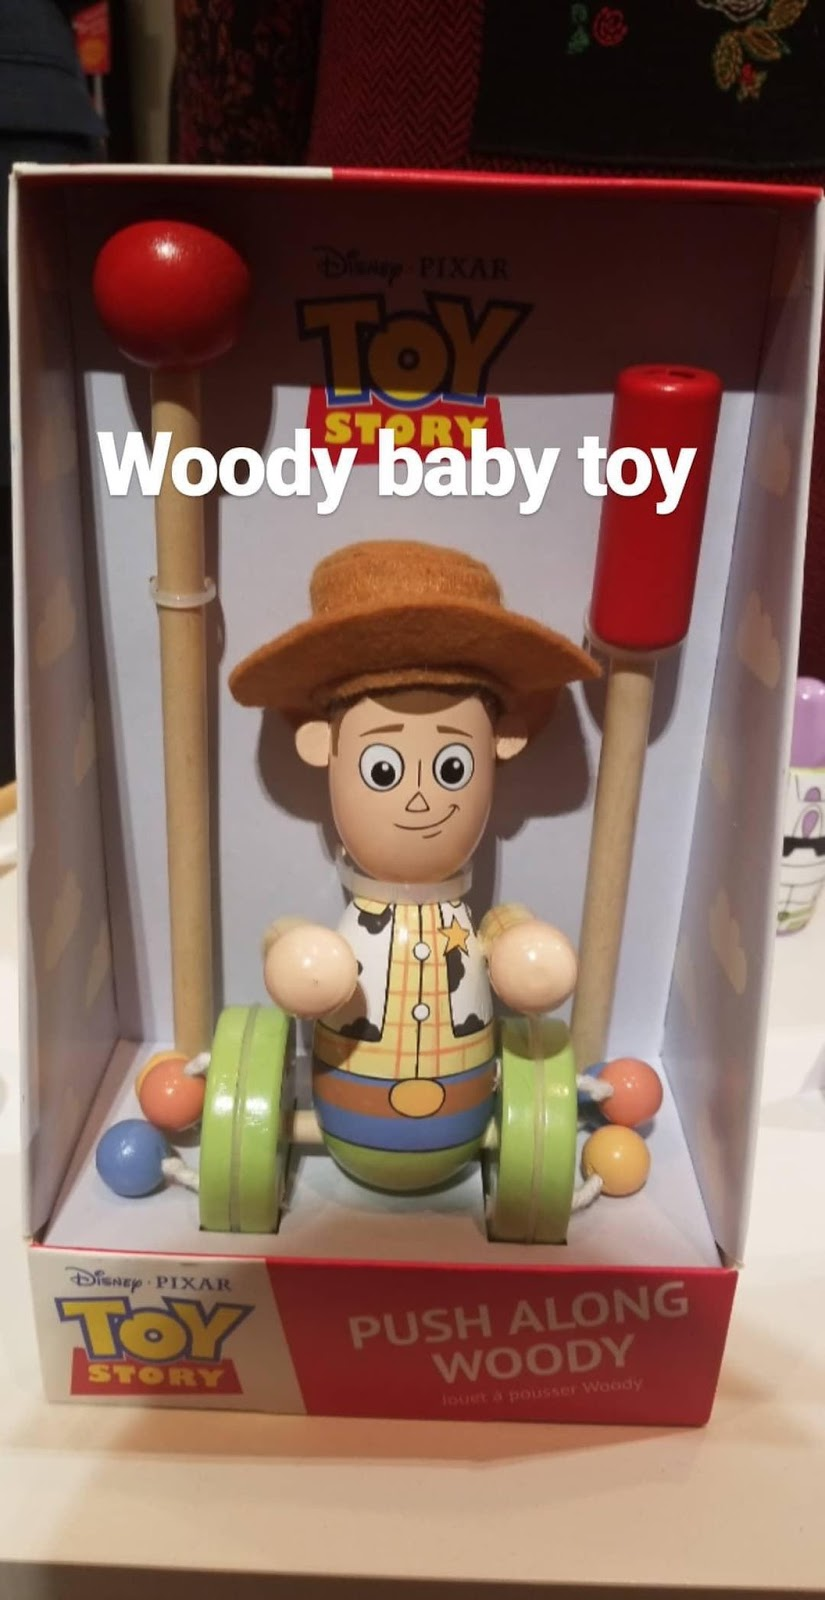 pixar toy story wooden baby toys